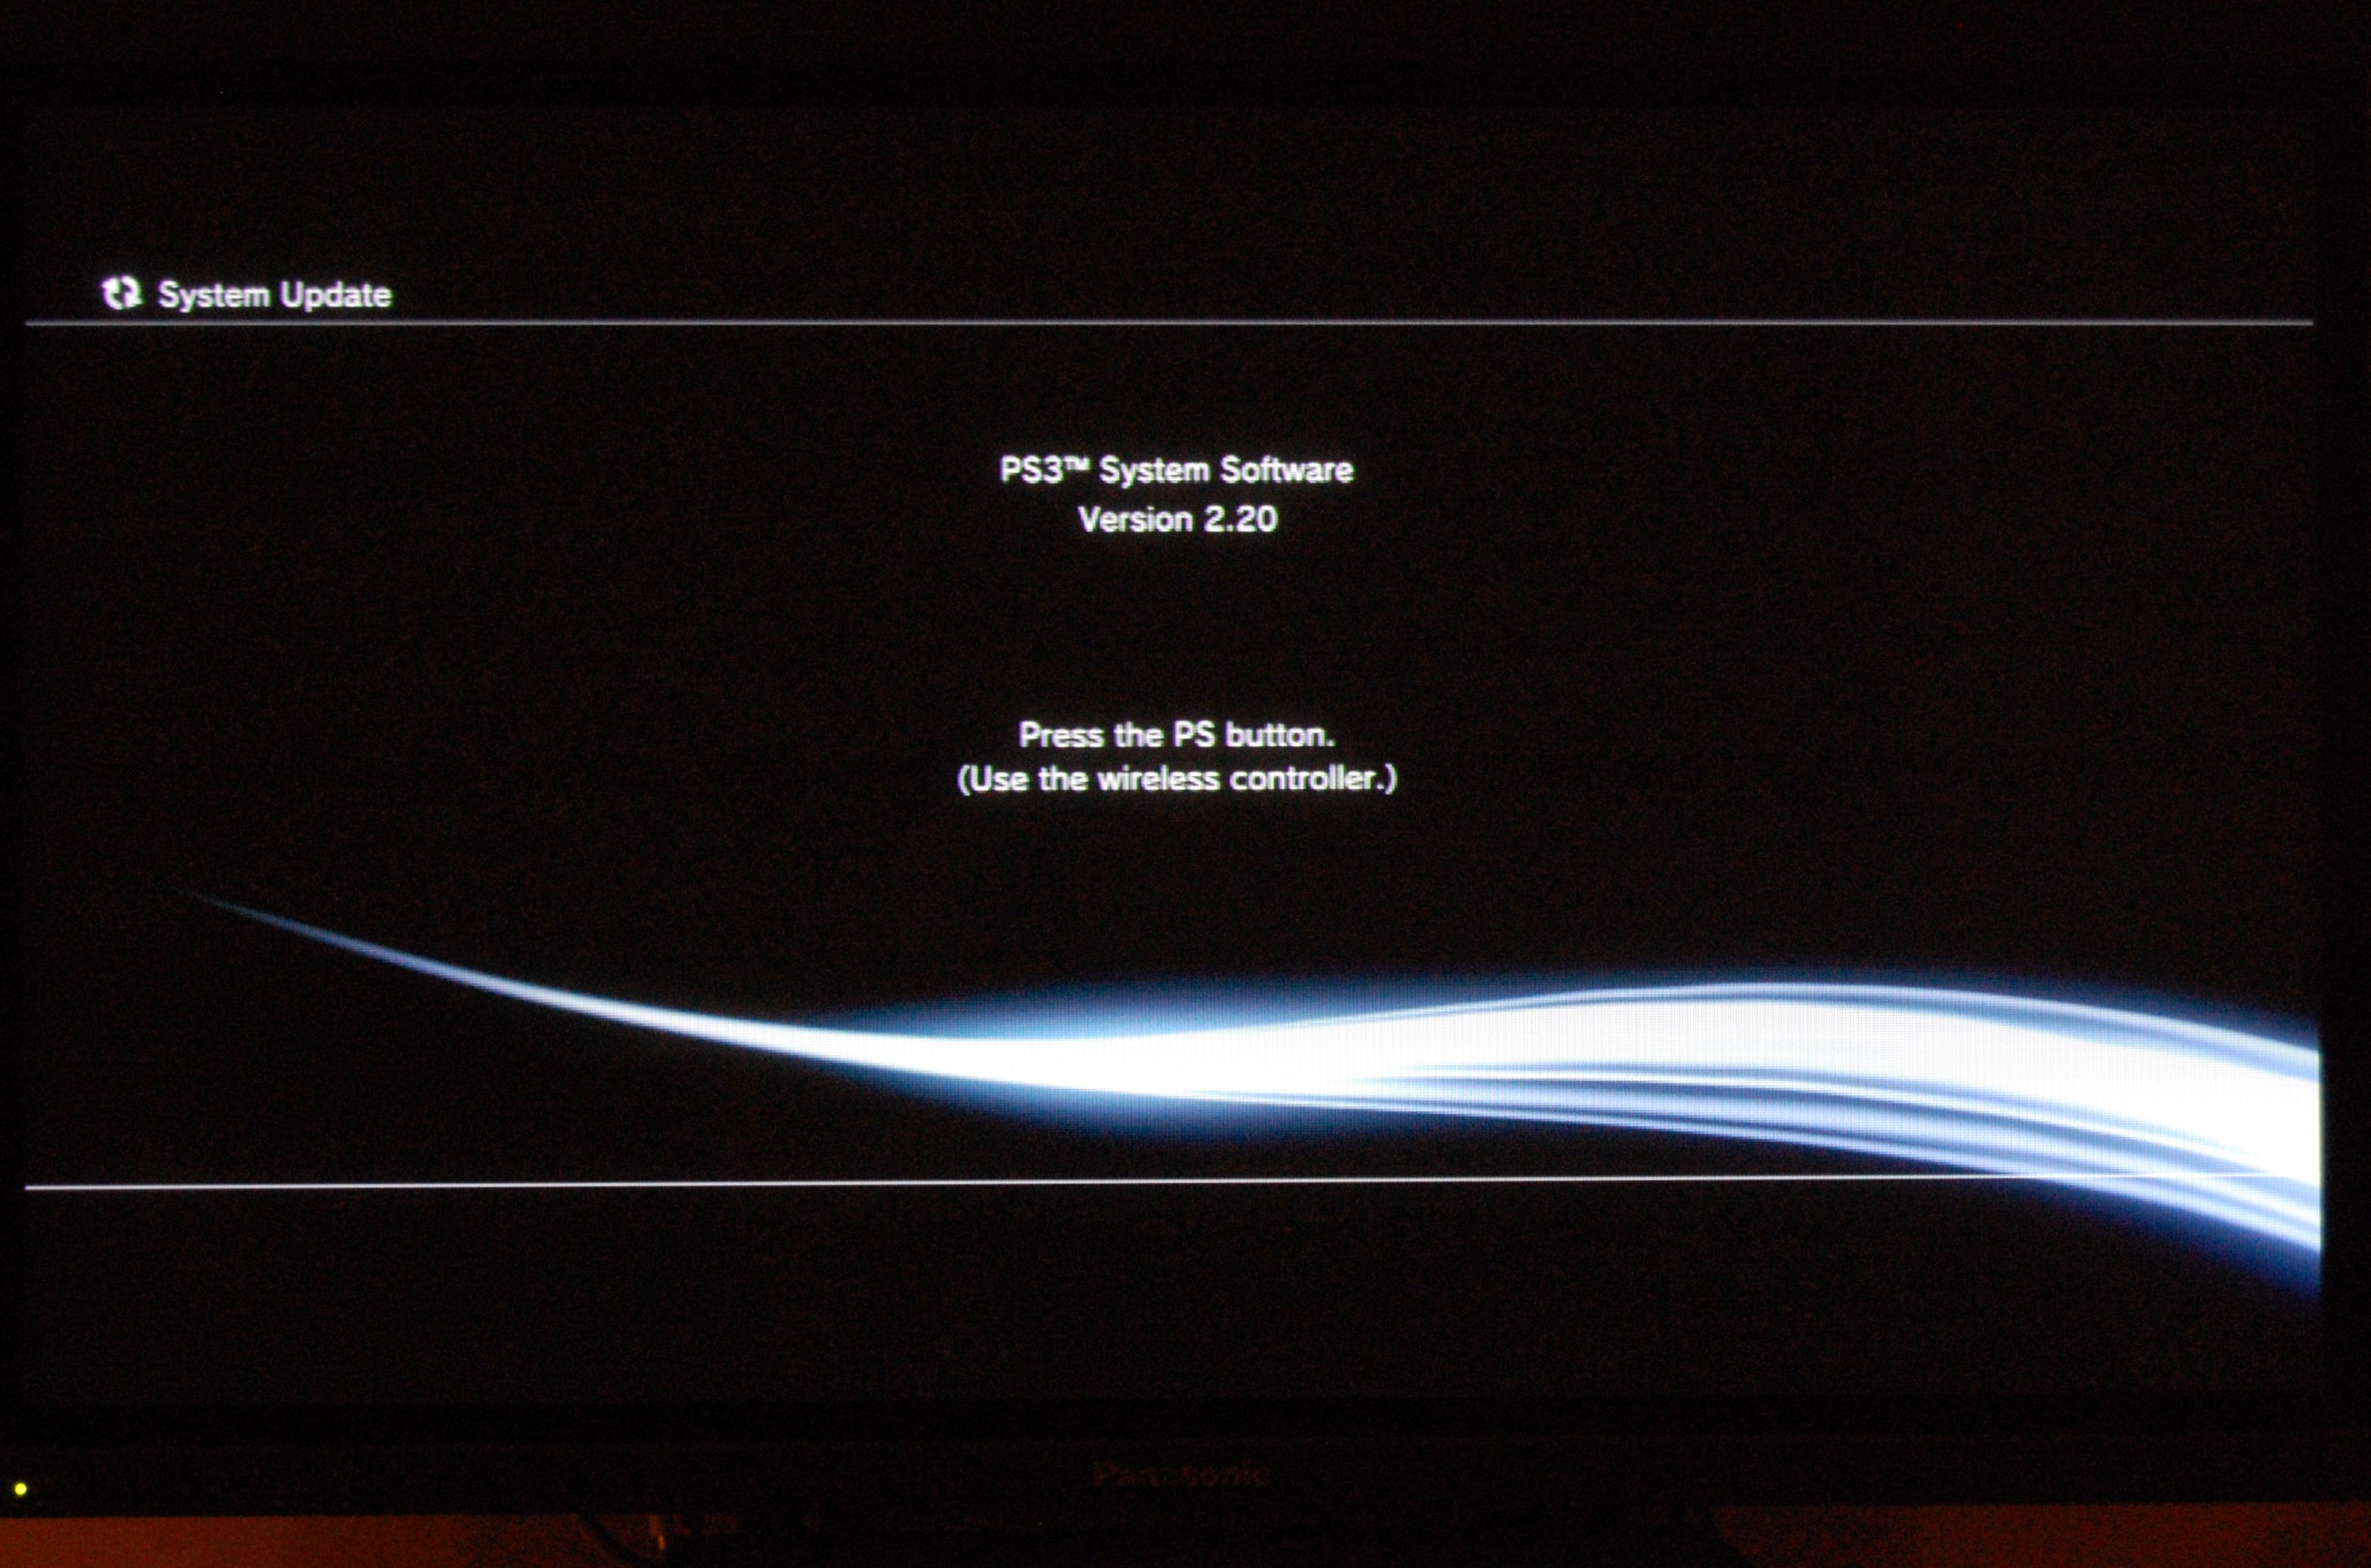 Updating system software on ps3